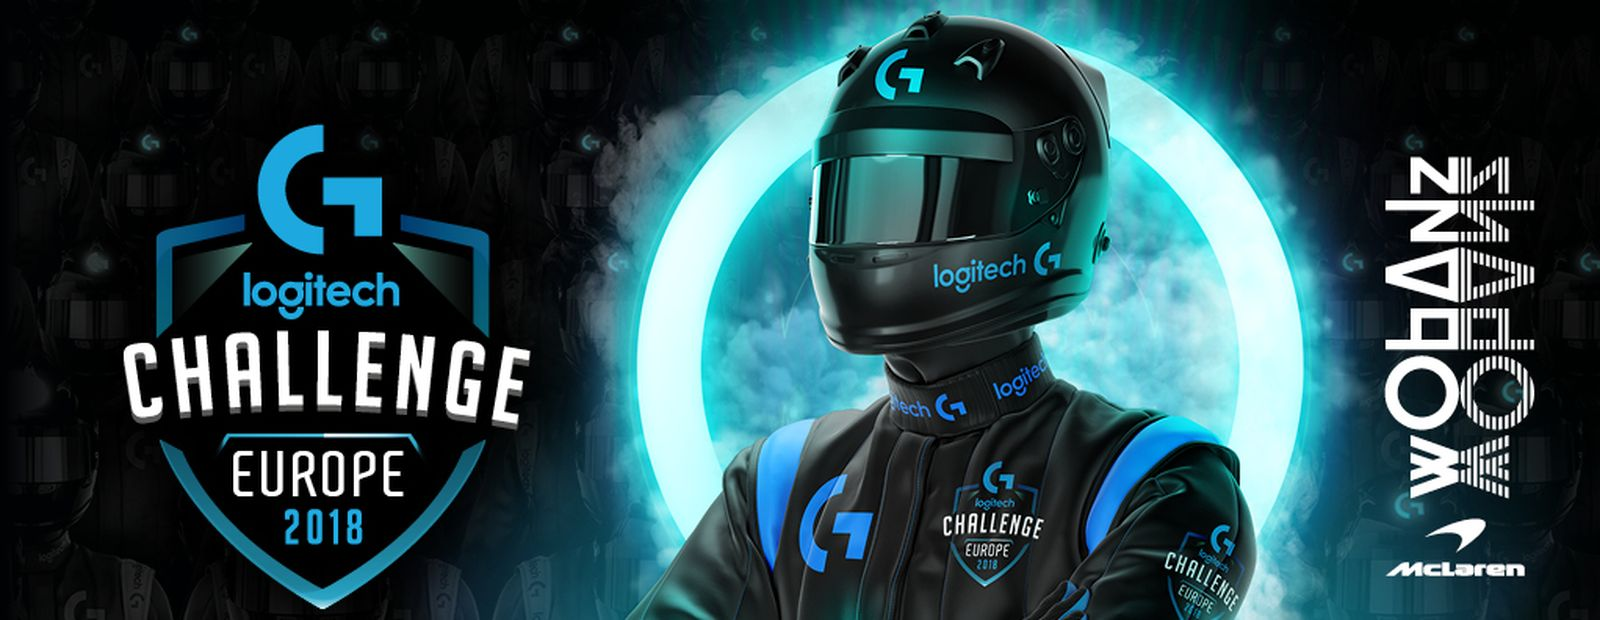 Get ready to race with the Logitech G challenge